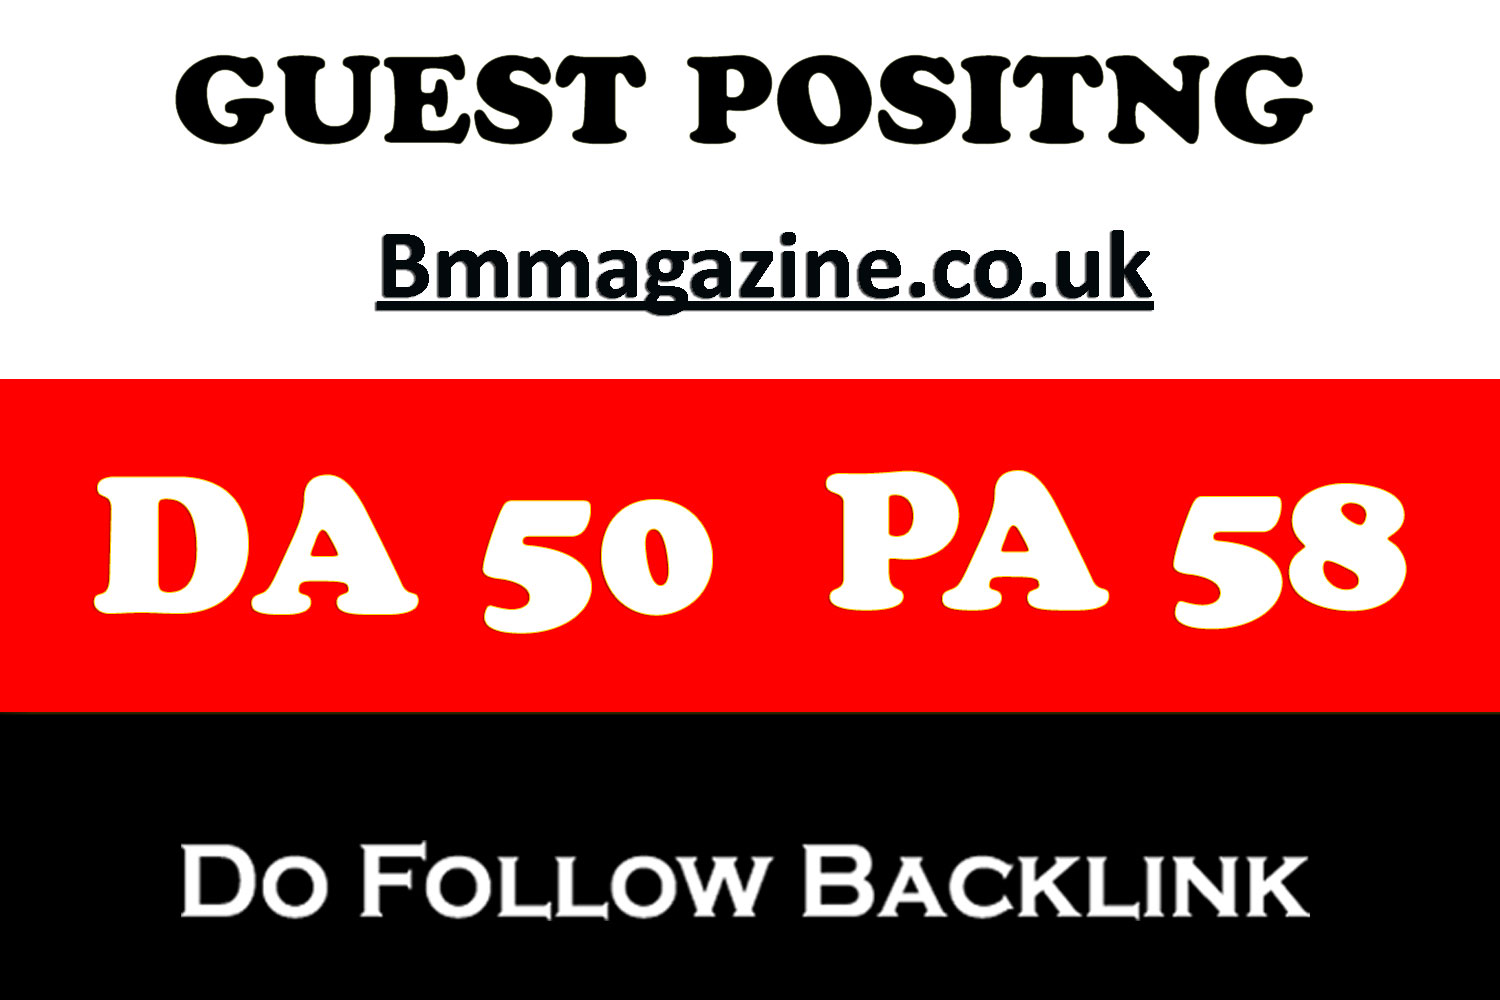 Write A Dof0llow Guest Post onUk Magazine Blog BmMagazine. co. uk DA50/PA58